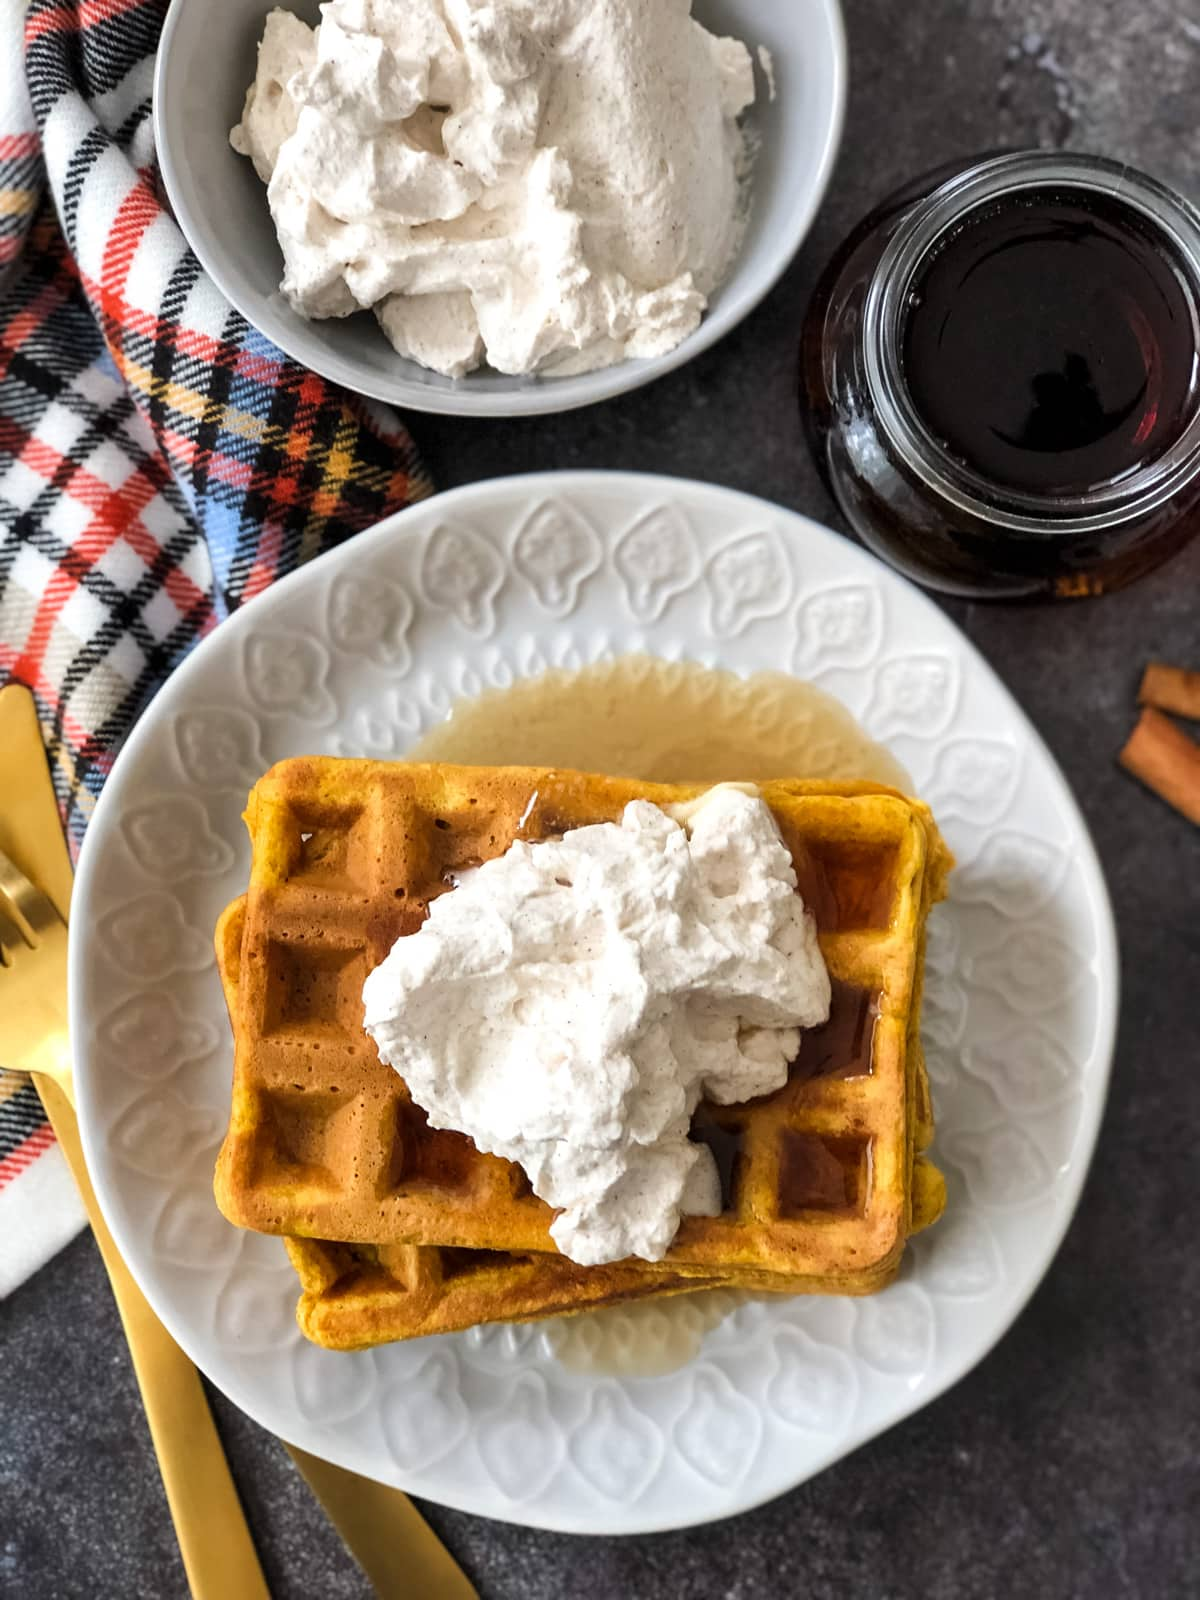 A top down view of a plate of Pumpkin Pie Waffles with Cinnamon Whipped Cream